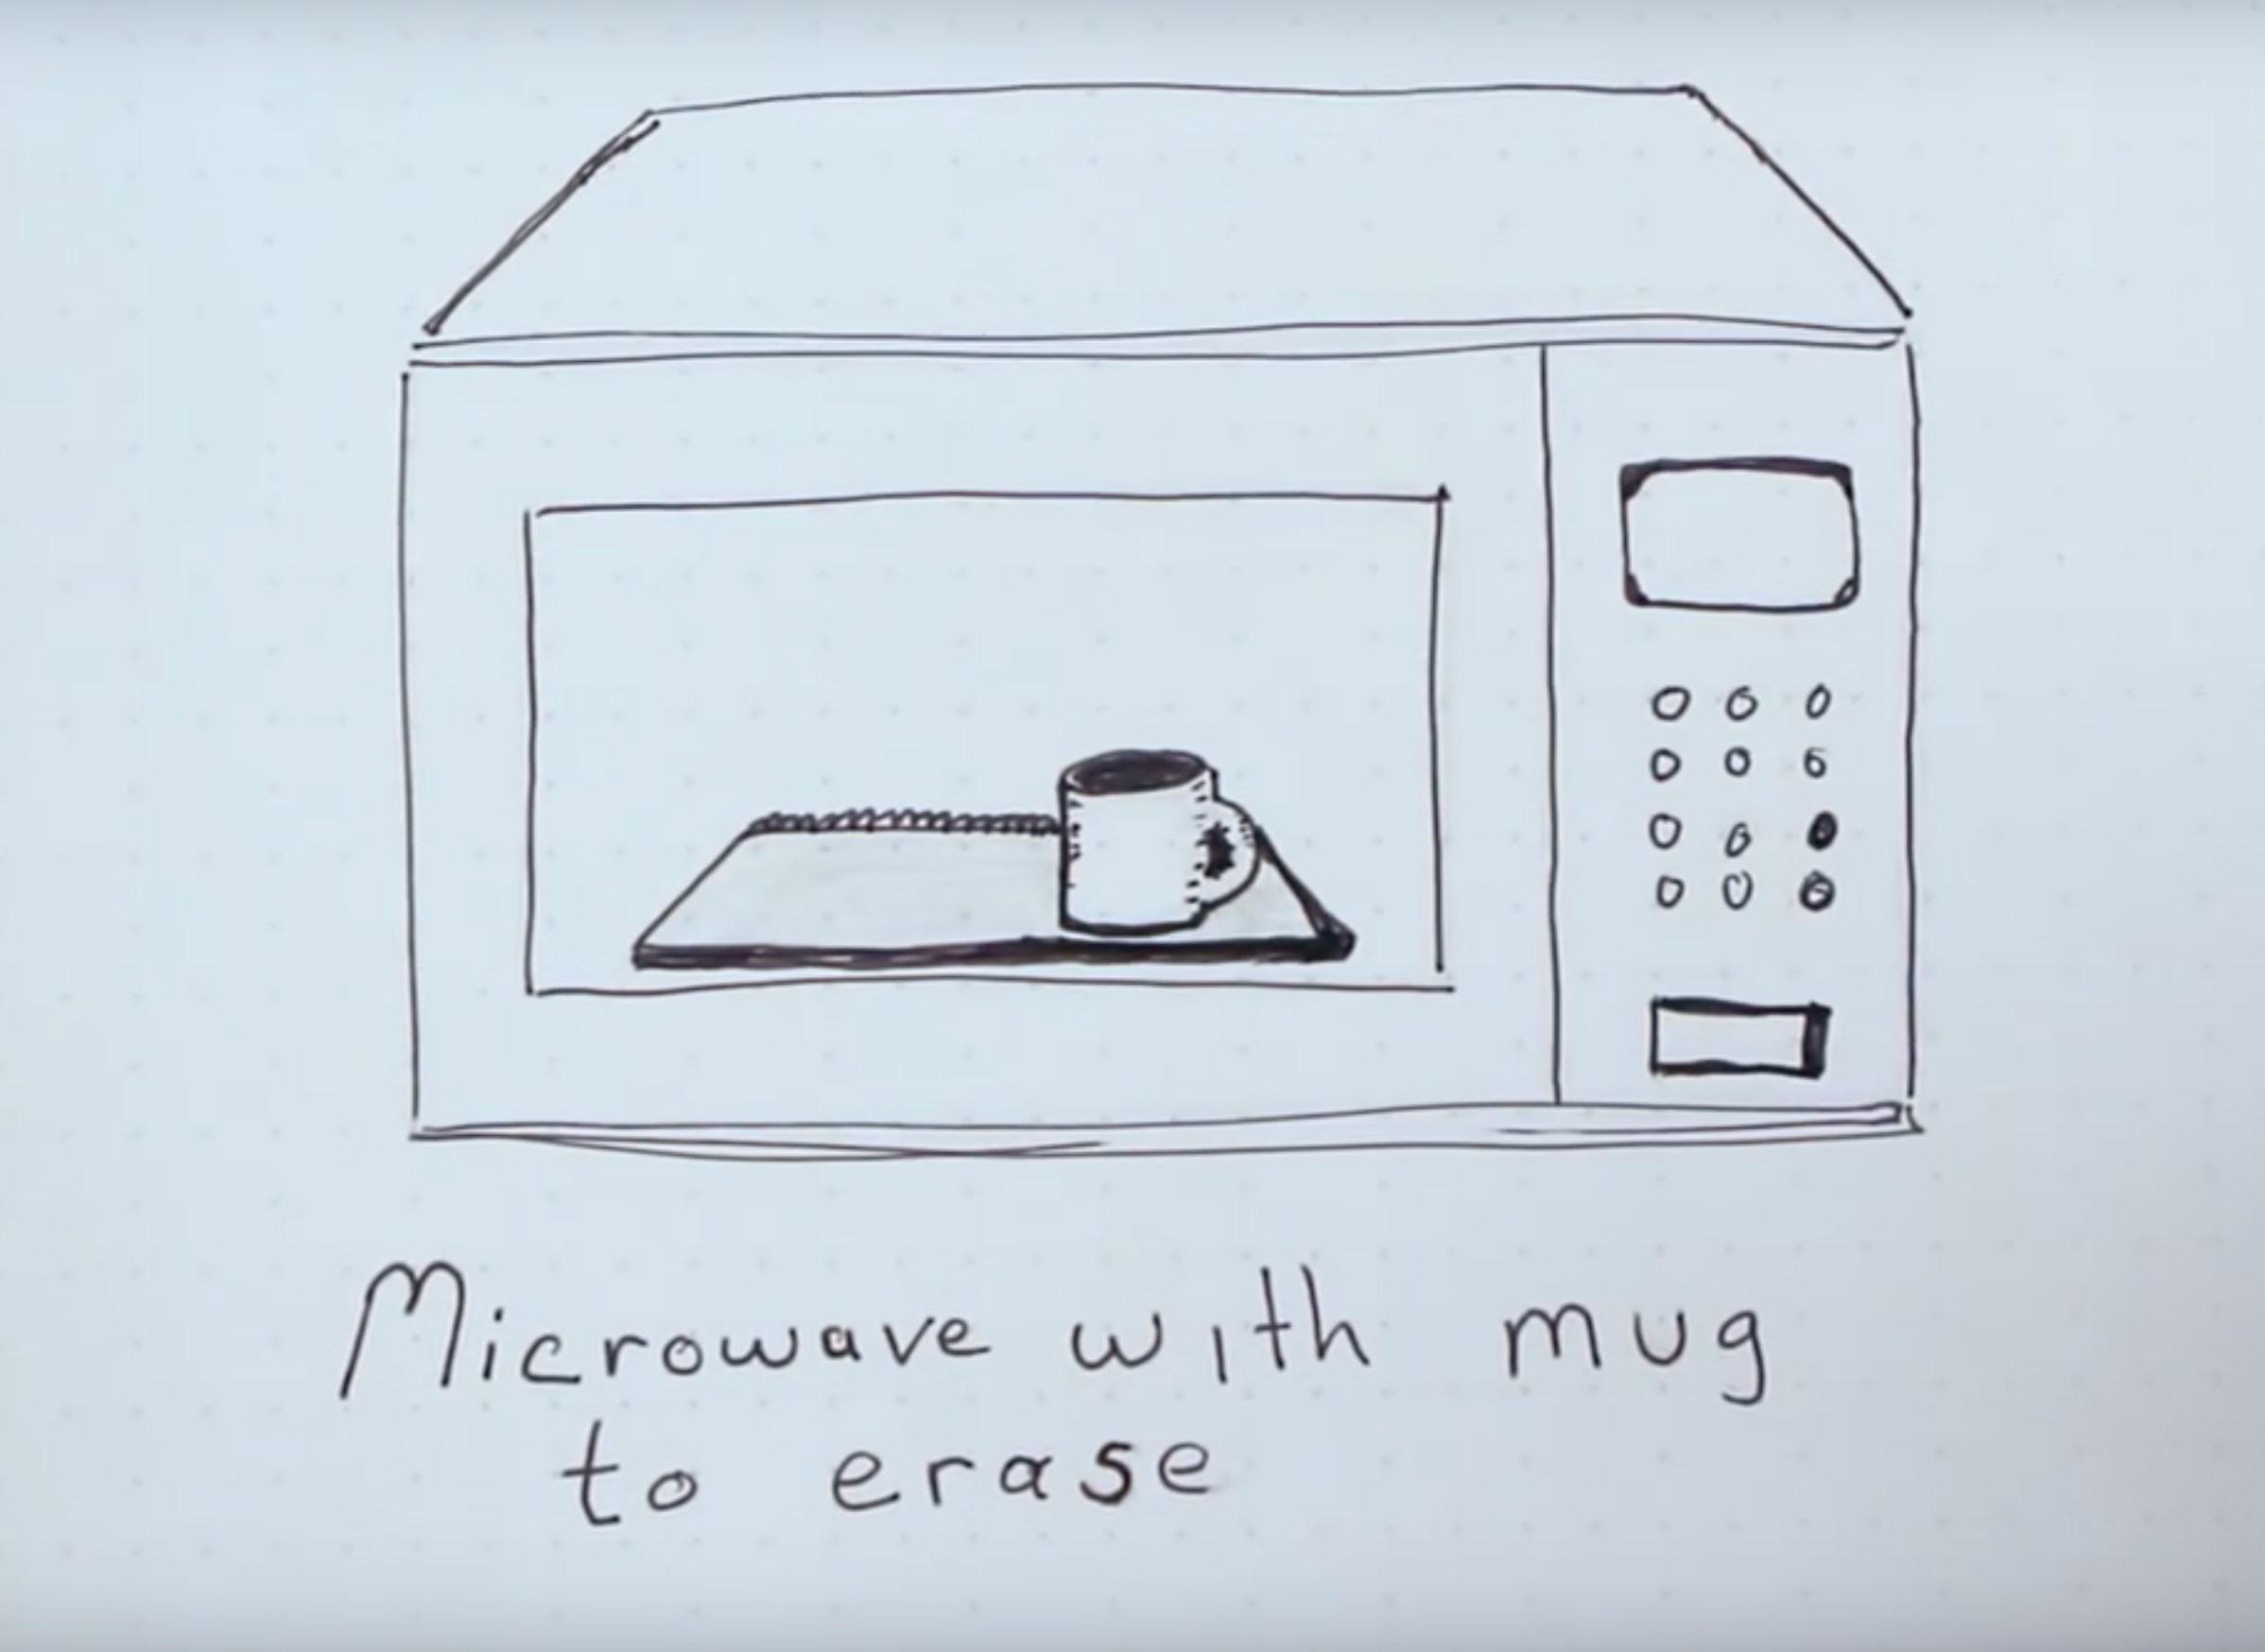 Microwave Drawing at GetDrawings.com | Free for personal use ...